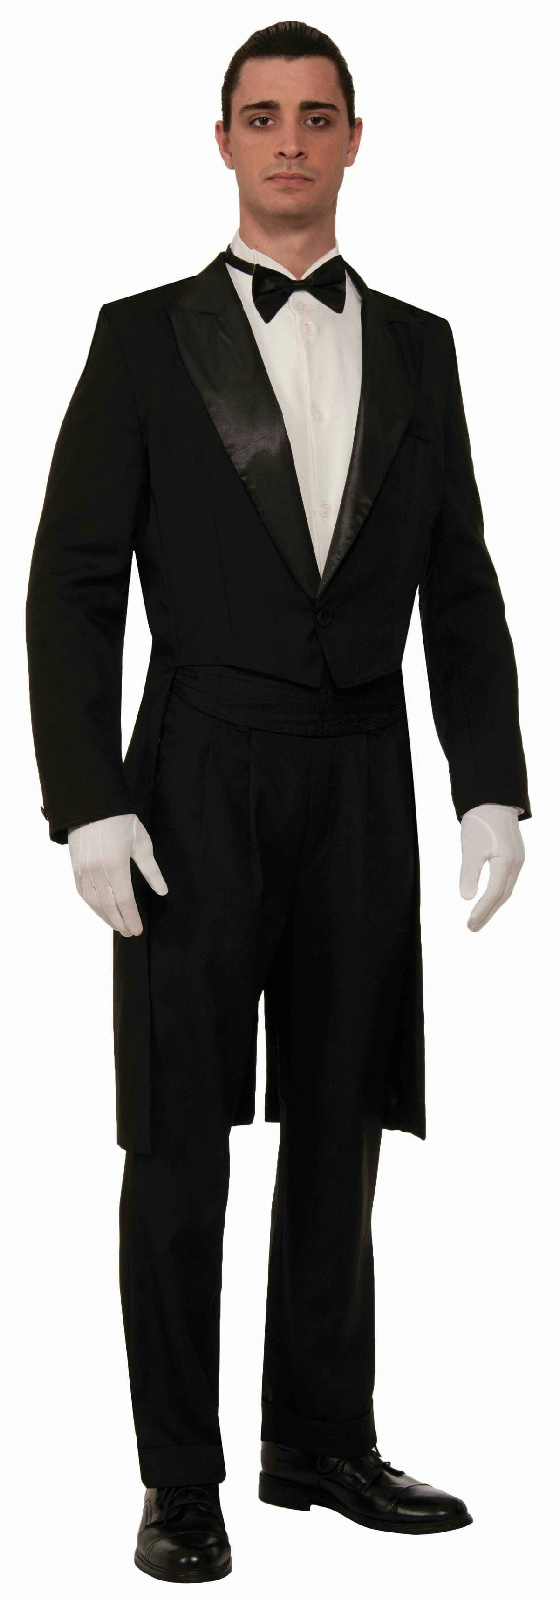 Polyester Gabardine the classic a tail coat Tuxedo with Modern Button T Polyester Gabardine the classic a tail coat Tuxedo with Modern Button T SIZE: 38RR 38LL WAIST: 32